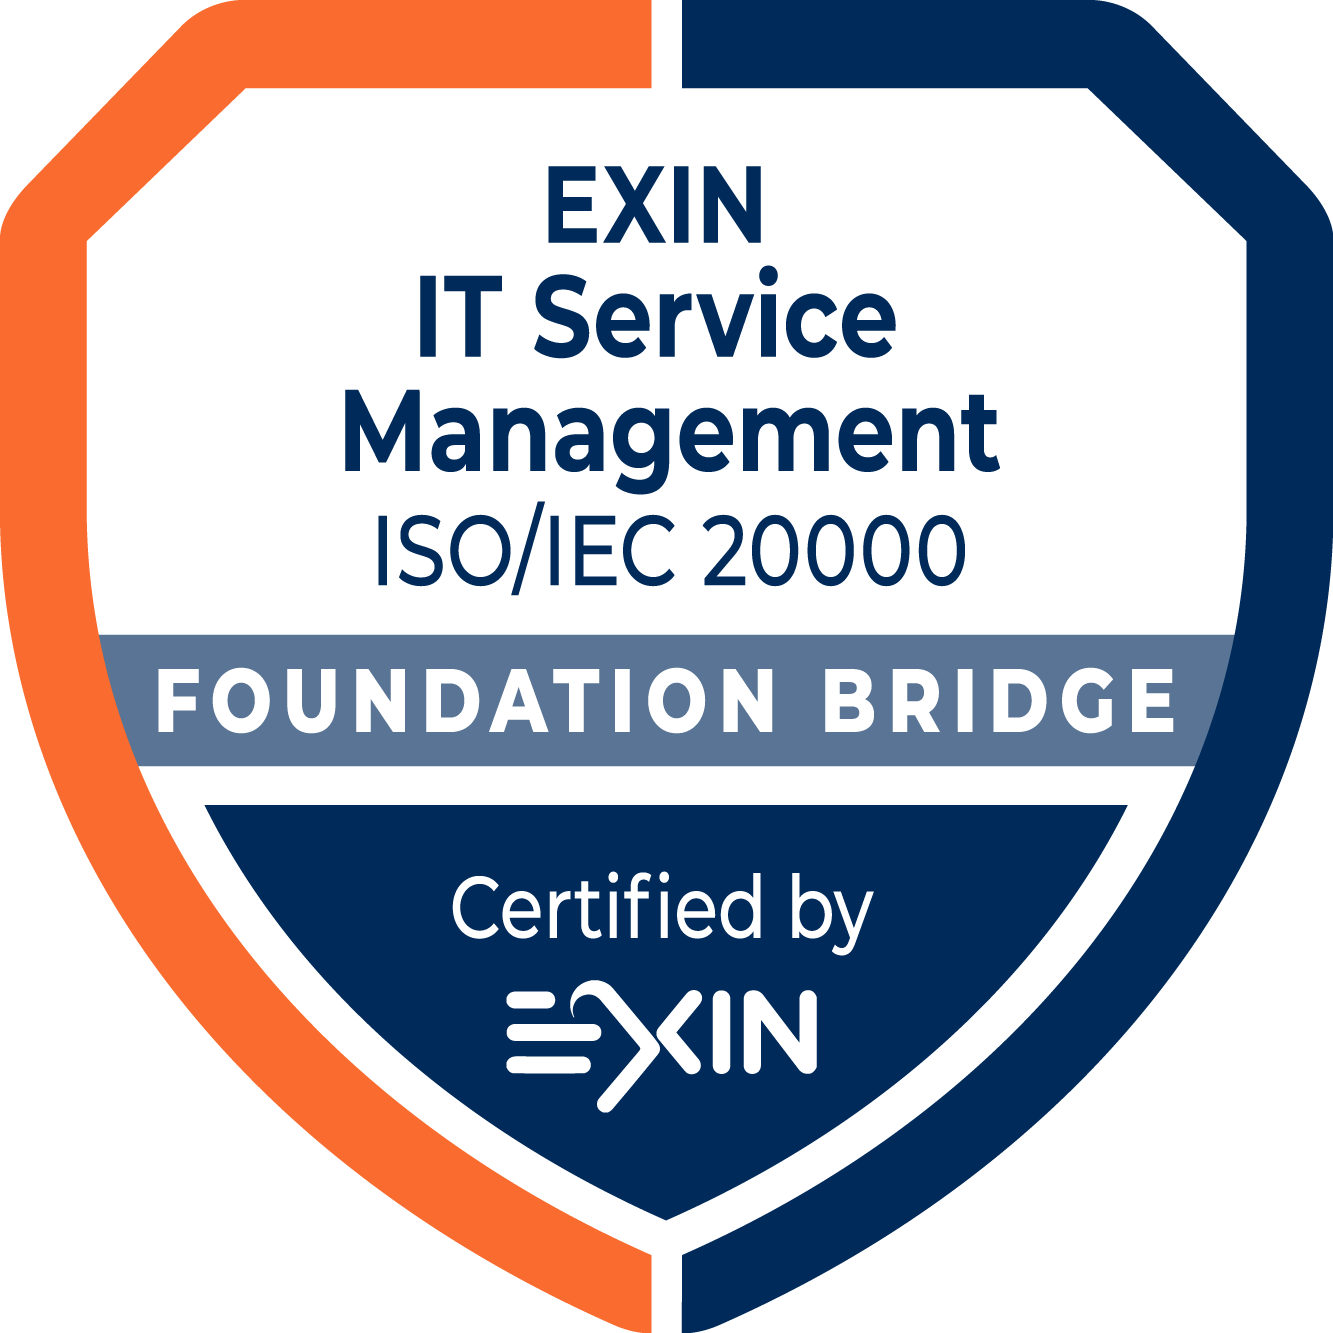 EXIN IT Service Management Foundation Bridge based on ISO/IEC 20000:2011